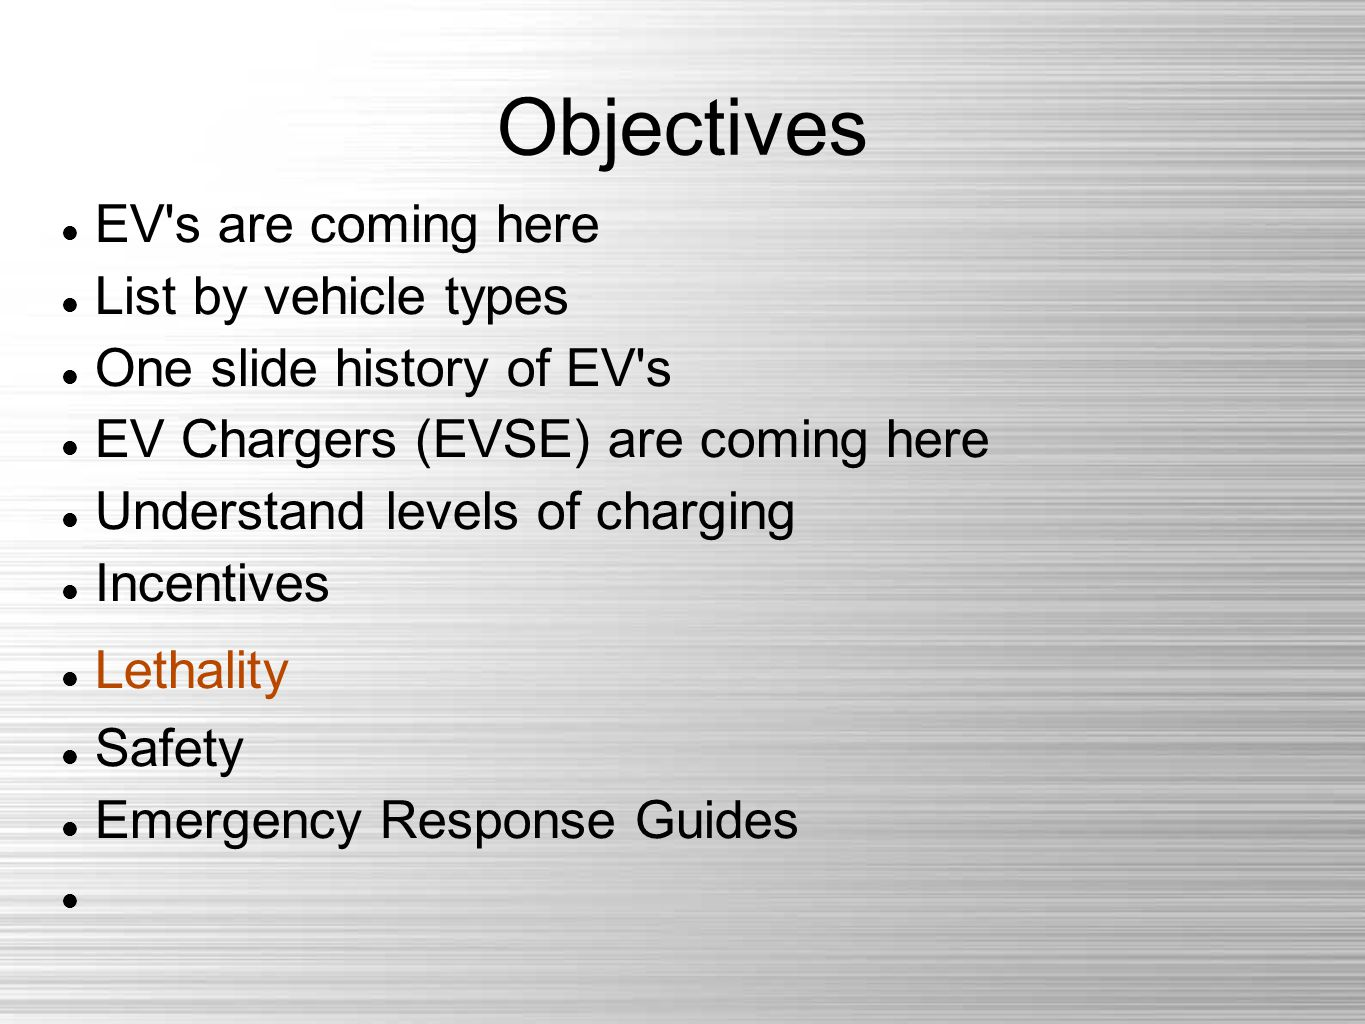 Objectives EV s are coming here List by vehicle types One slide history of EV s EV Chargers (EVSE) are coming here Understand levels of charging Incentives Lethality Safety Emergency Response Guides